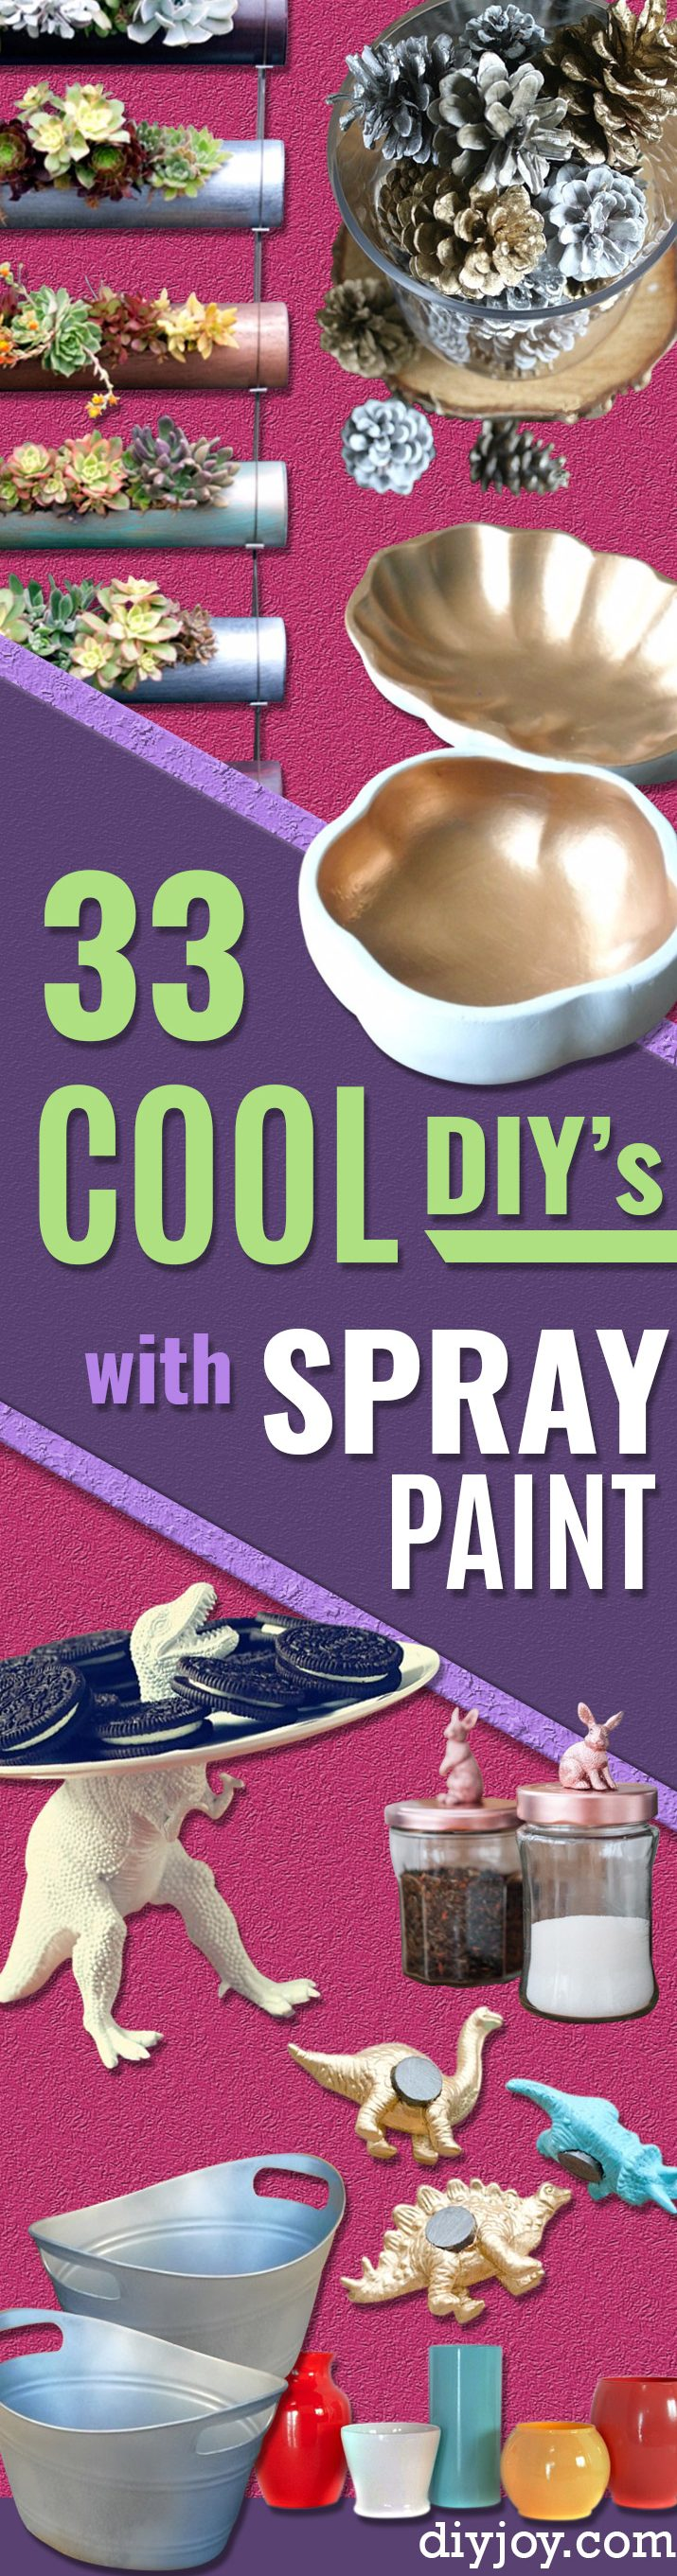 33 Cool DIYs With Spray Paint - Easy Spray Paint Decor, Fun Do It Yourself Spray Paint Ideas, Cool Spray Paint Projects To Try, Upcycled And Repurposed, Restore Old Items With Spray Paint